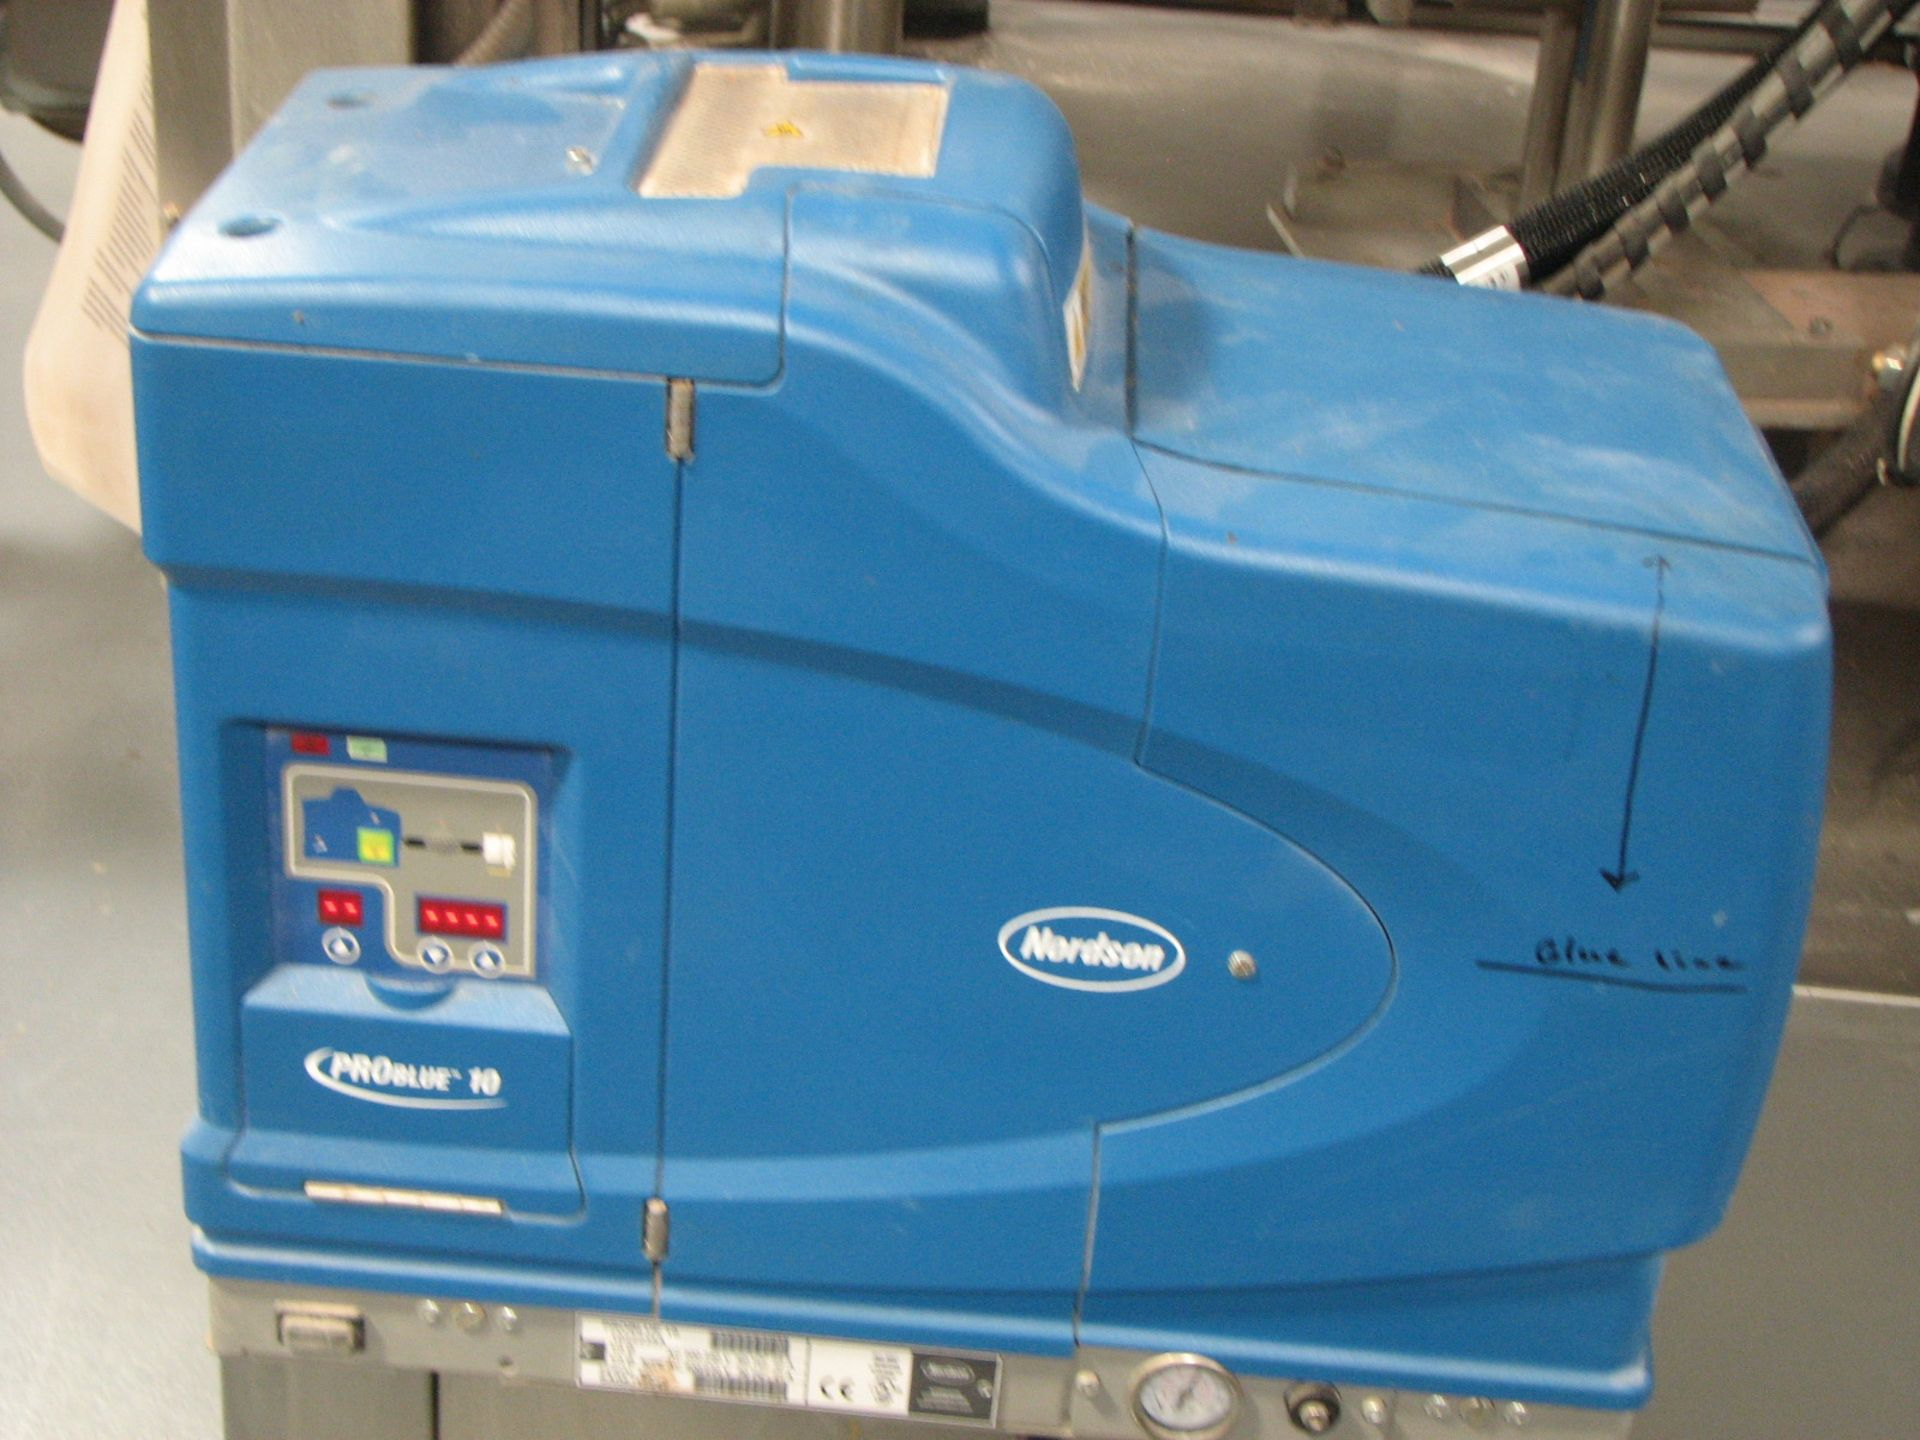 Krones 12 Station Canmatic Labeler, Maltese Cross - Image 6 of 6